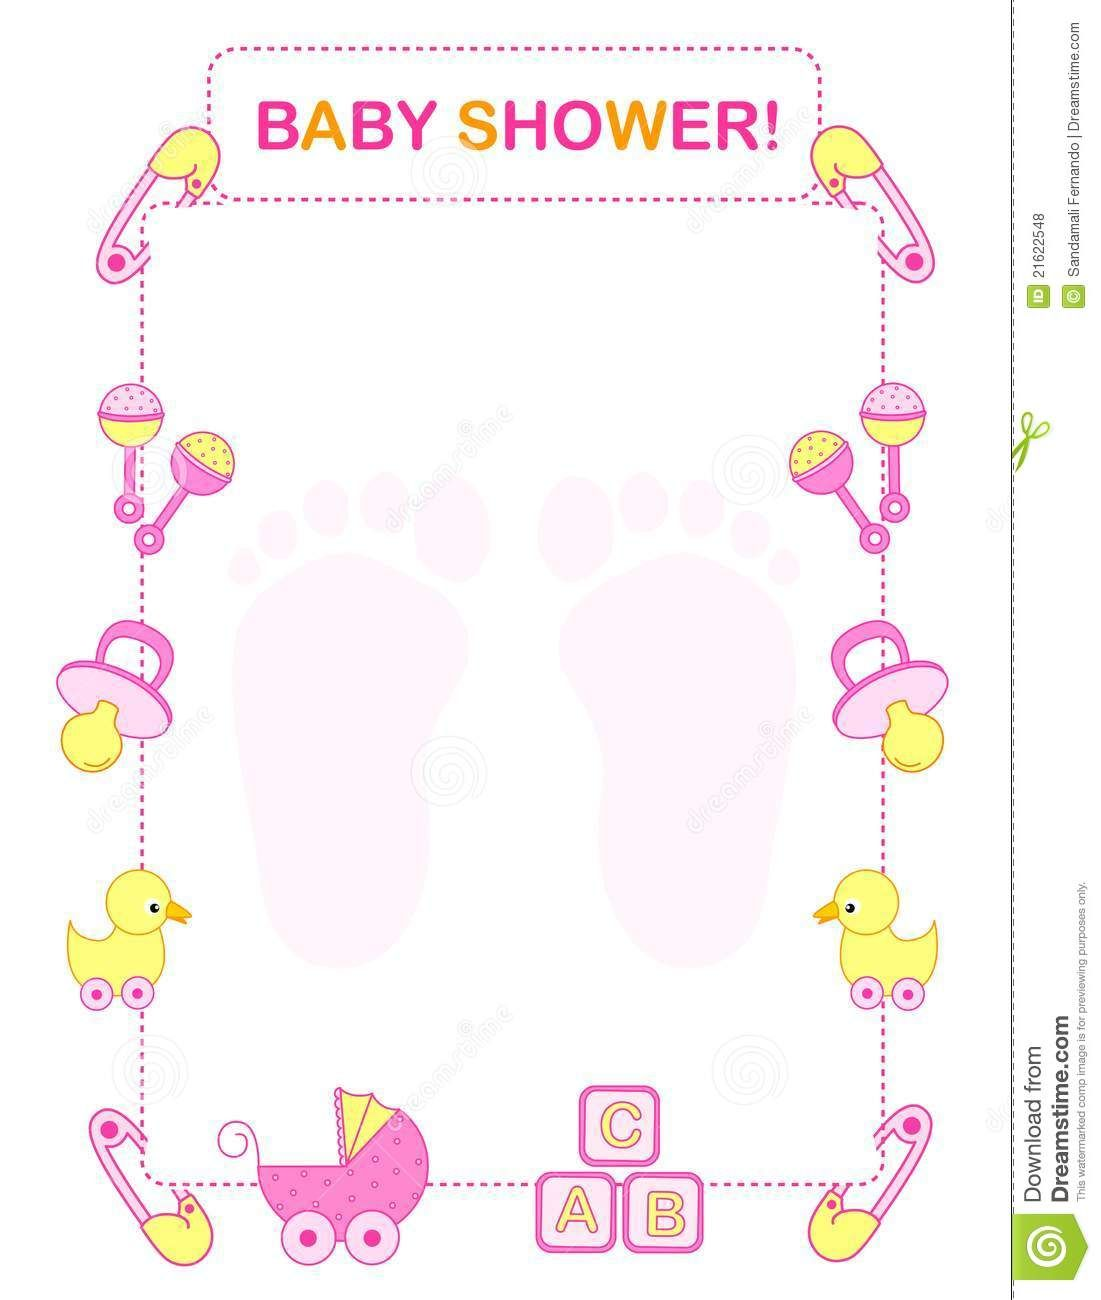 Free Printable Baby Shower Clip Art 59 Baby Shower Invitations Baby Shower Invitation Wording Boy Girl Baby Shower Centerpieces